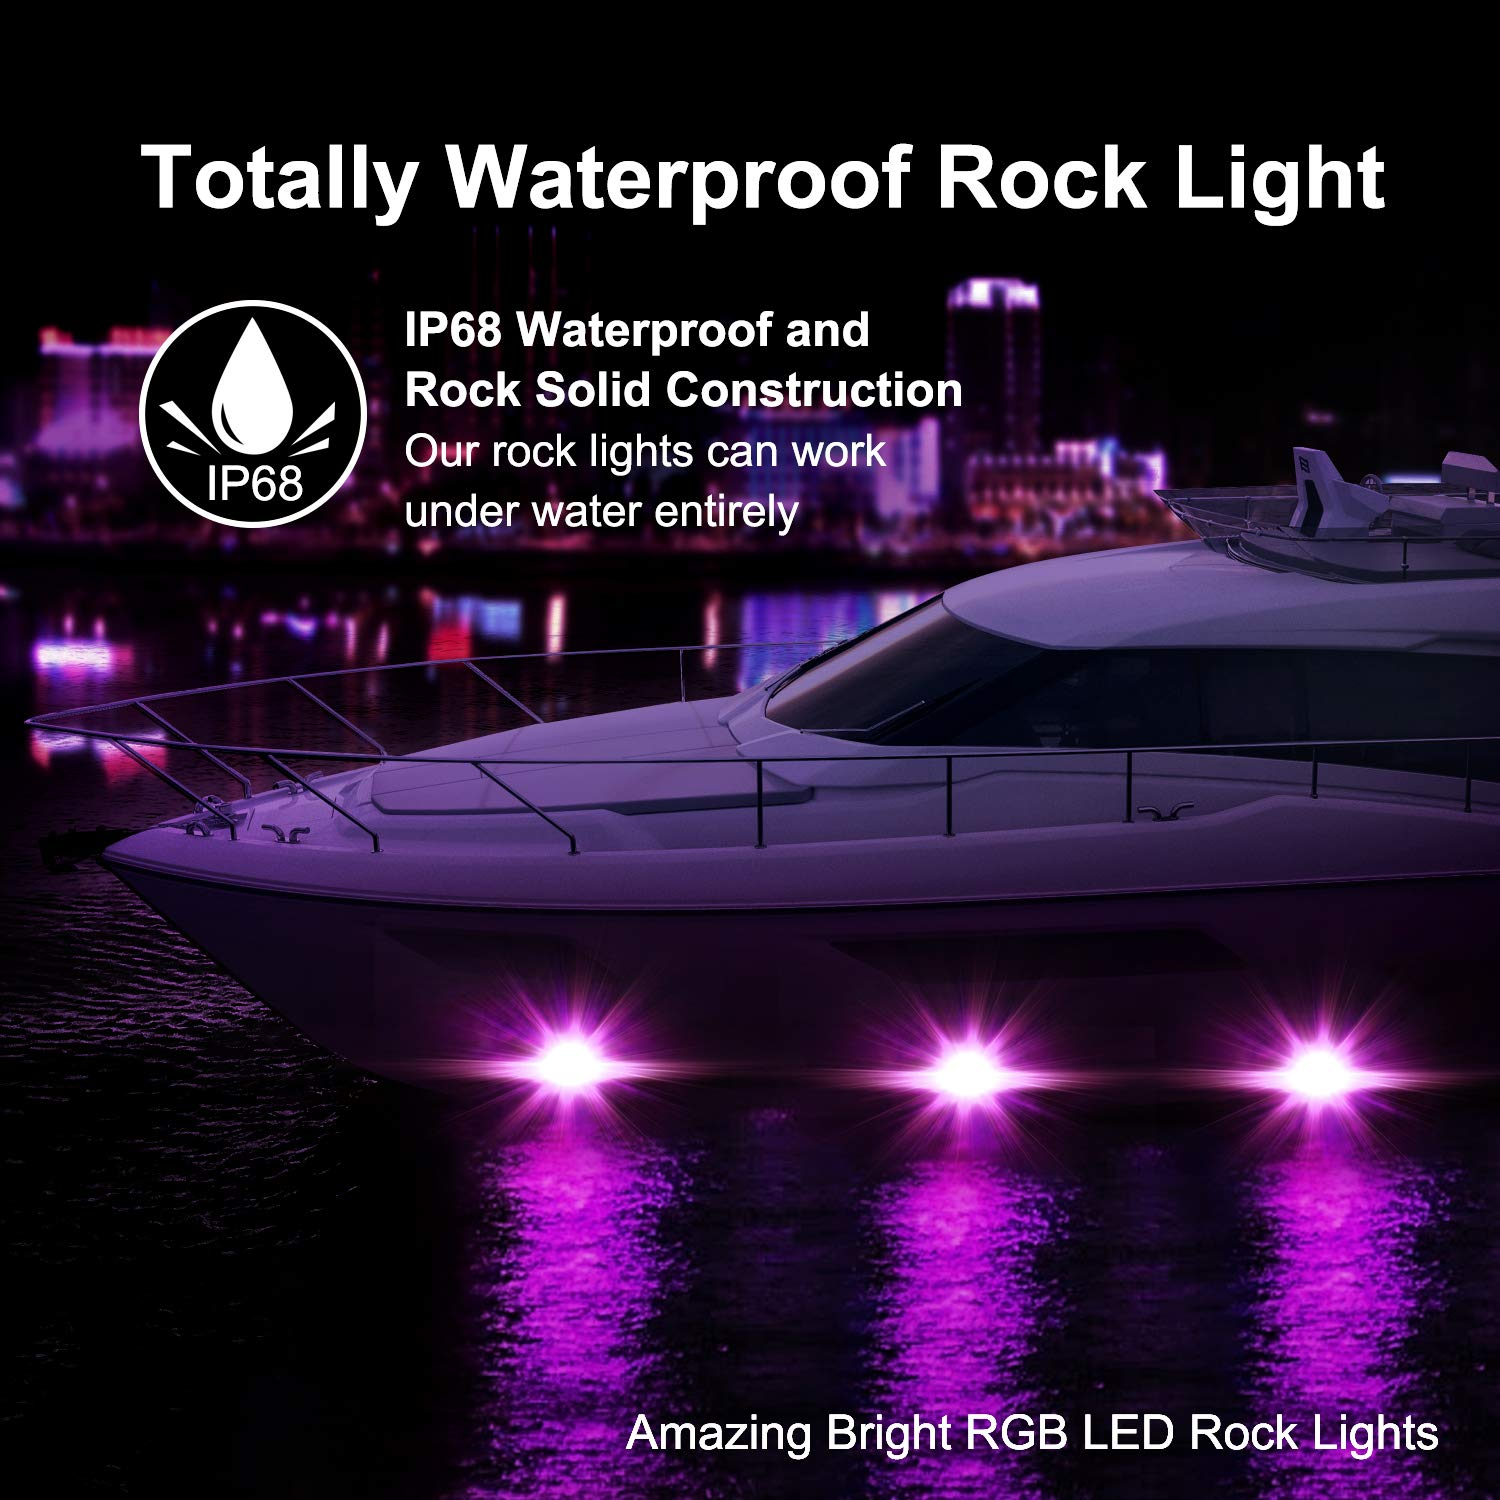 RGB Rock Light Kits OFFROADTOWN RGB LED Rock Lights with 6 pods Lights Neon Trail Rig Lights Underglow Off Road Truck SUV UTV ATV Boat